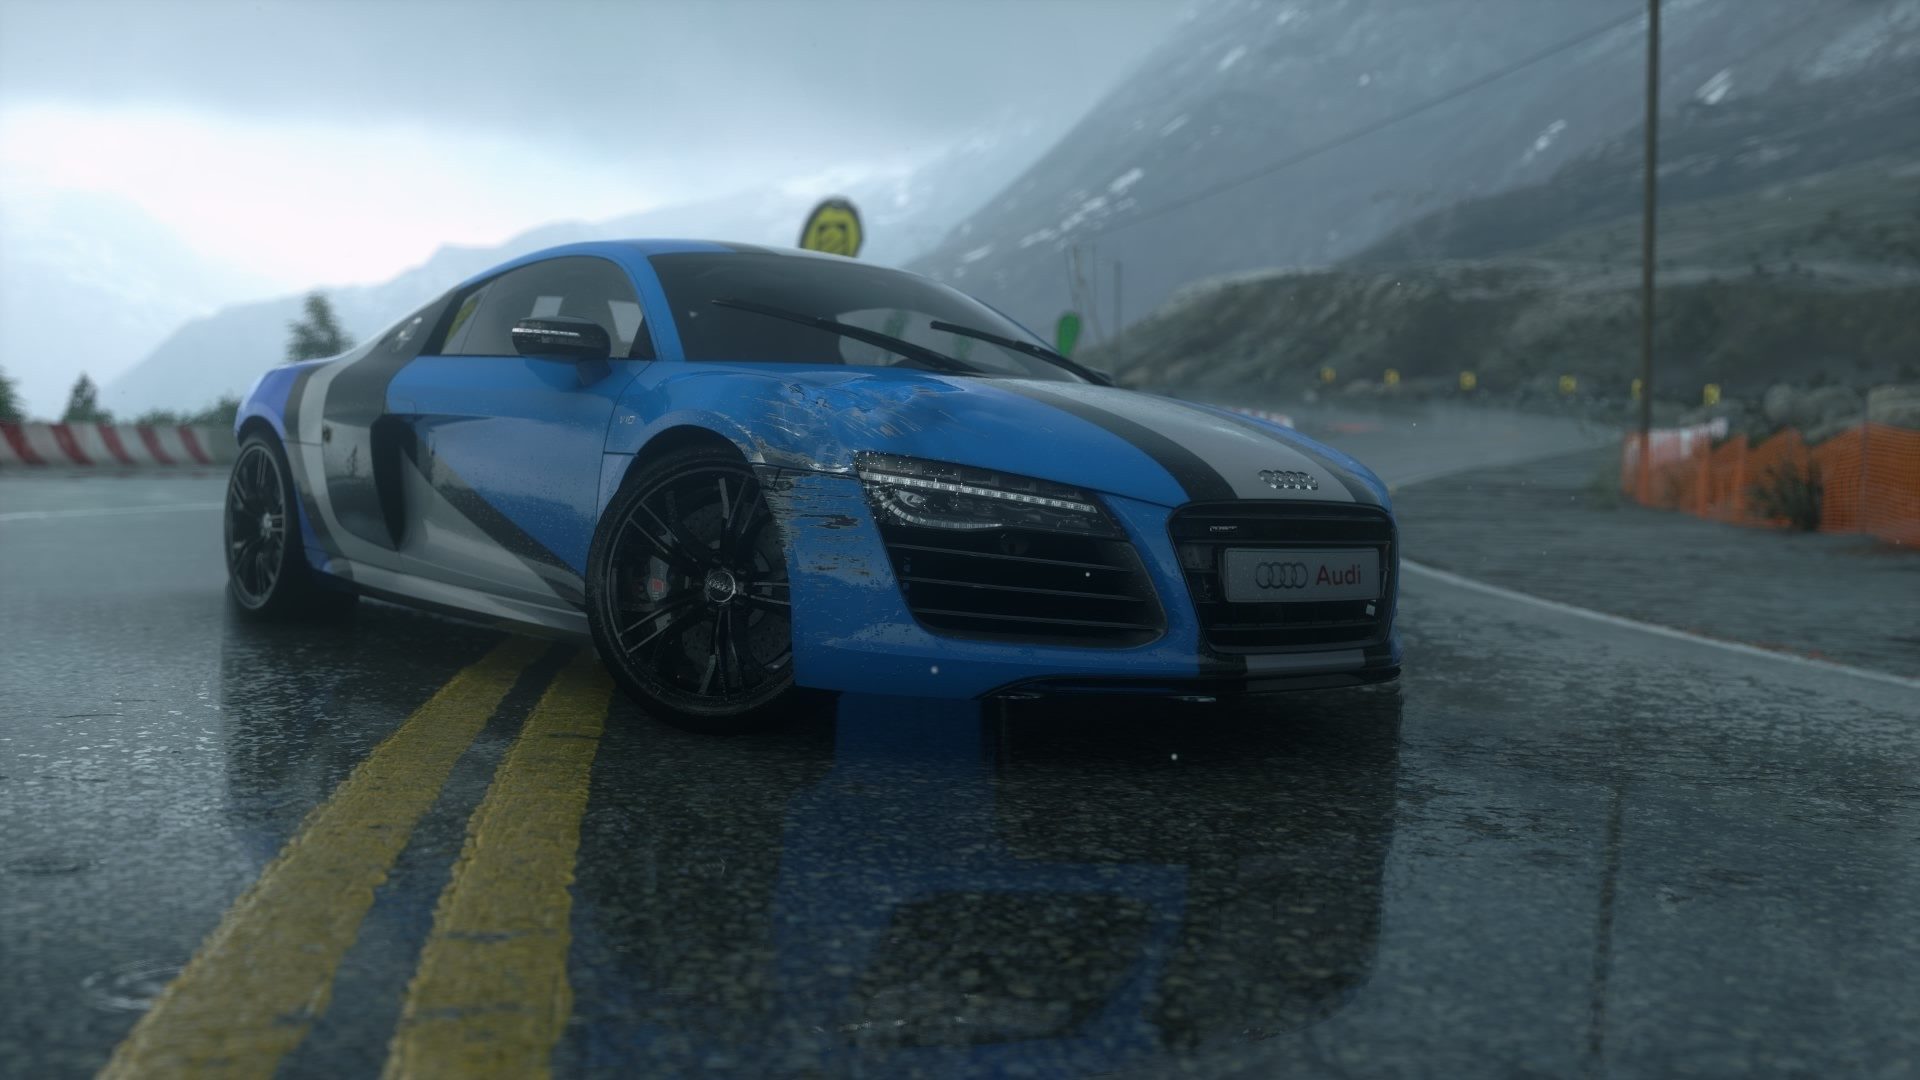 Audi Car Full Hd Wallpapers Audi R8 Screen Shot Road Reflection Forza Motorsport 5